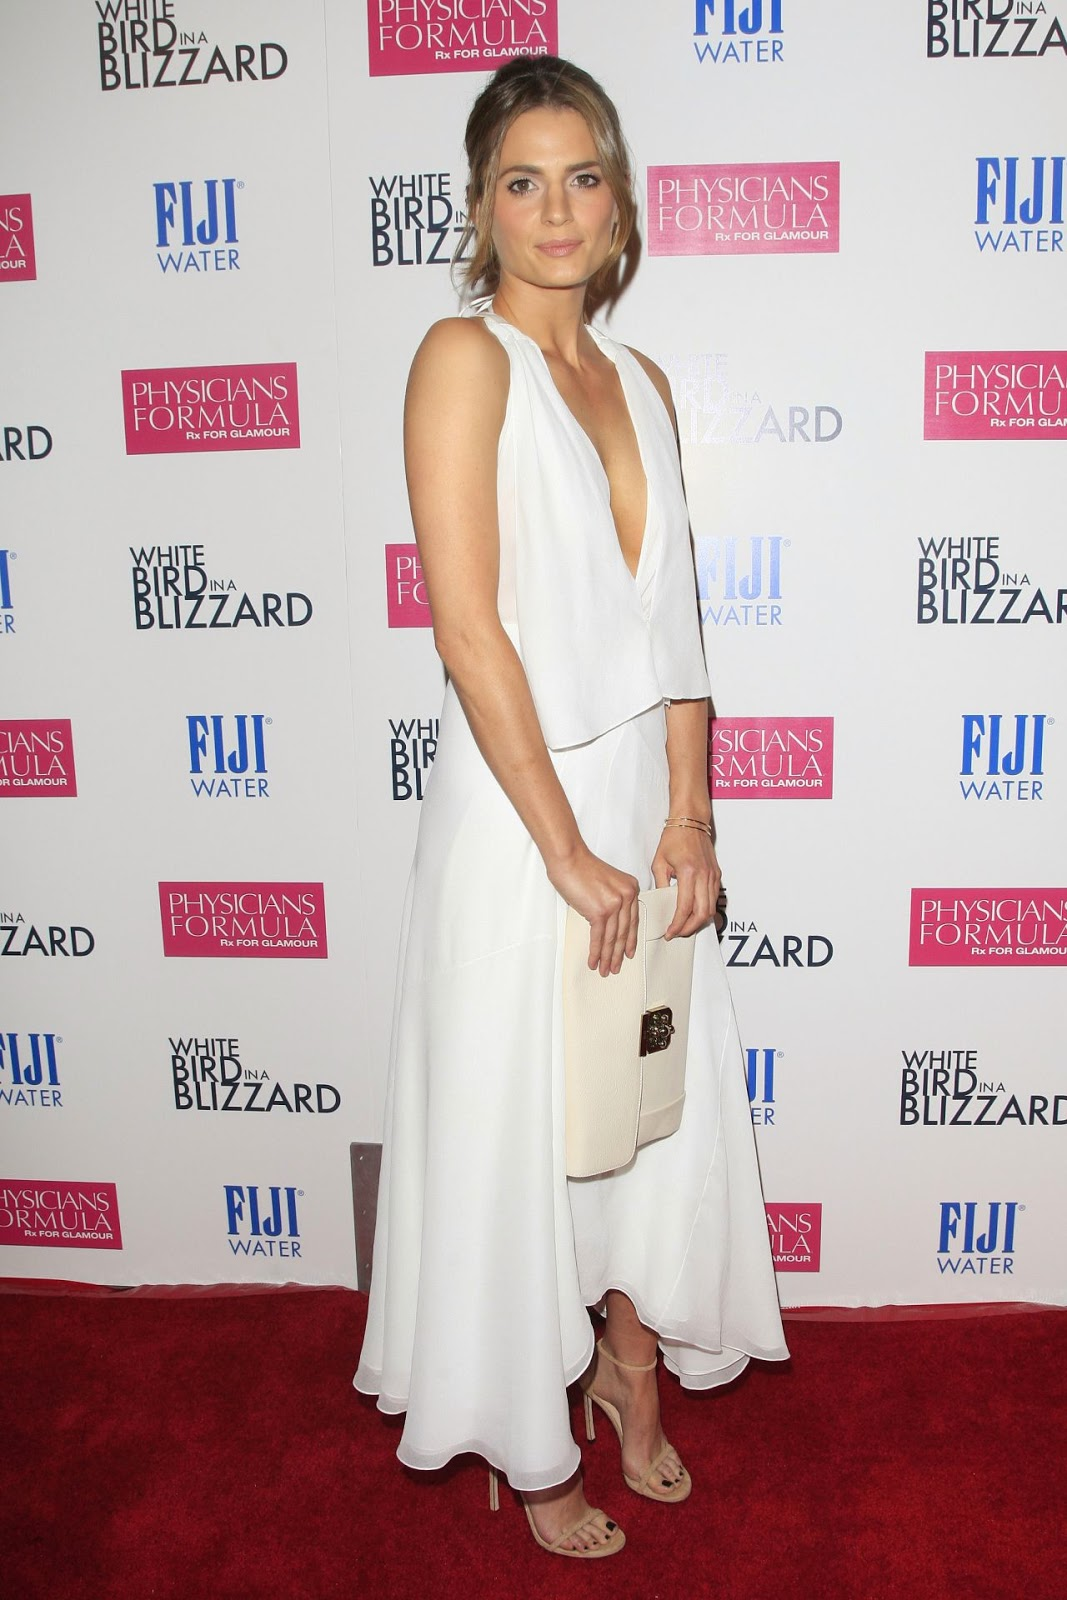 Stana Katic in a plunging white top and skirt at the 'White Bird in a Blizzard' LA premiere